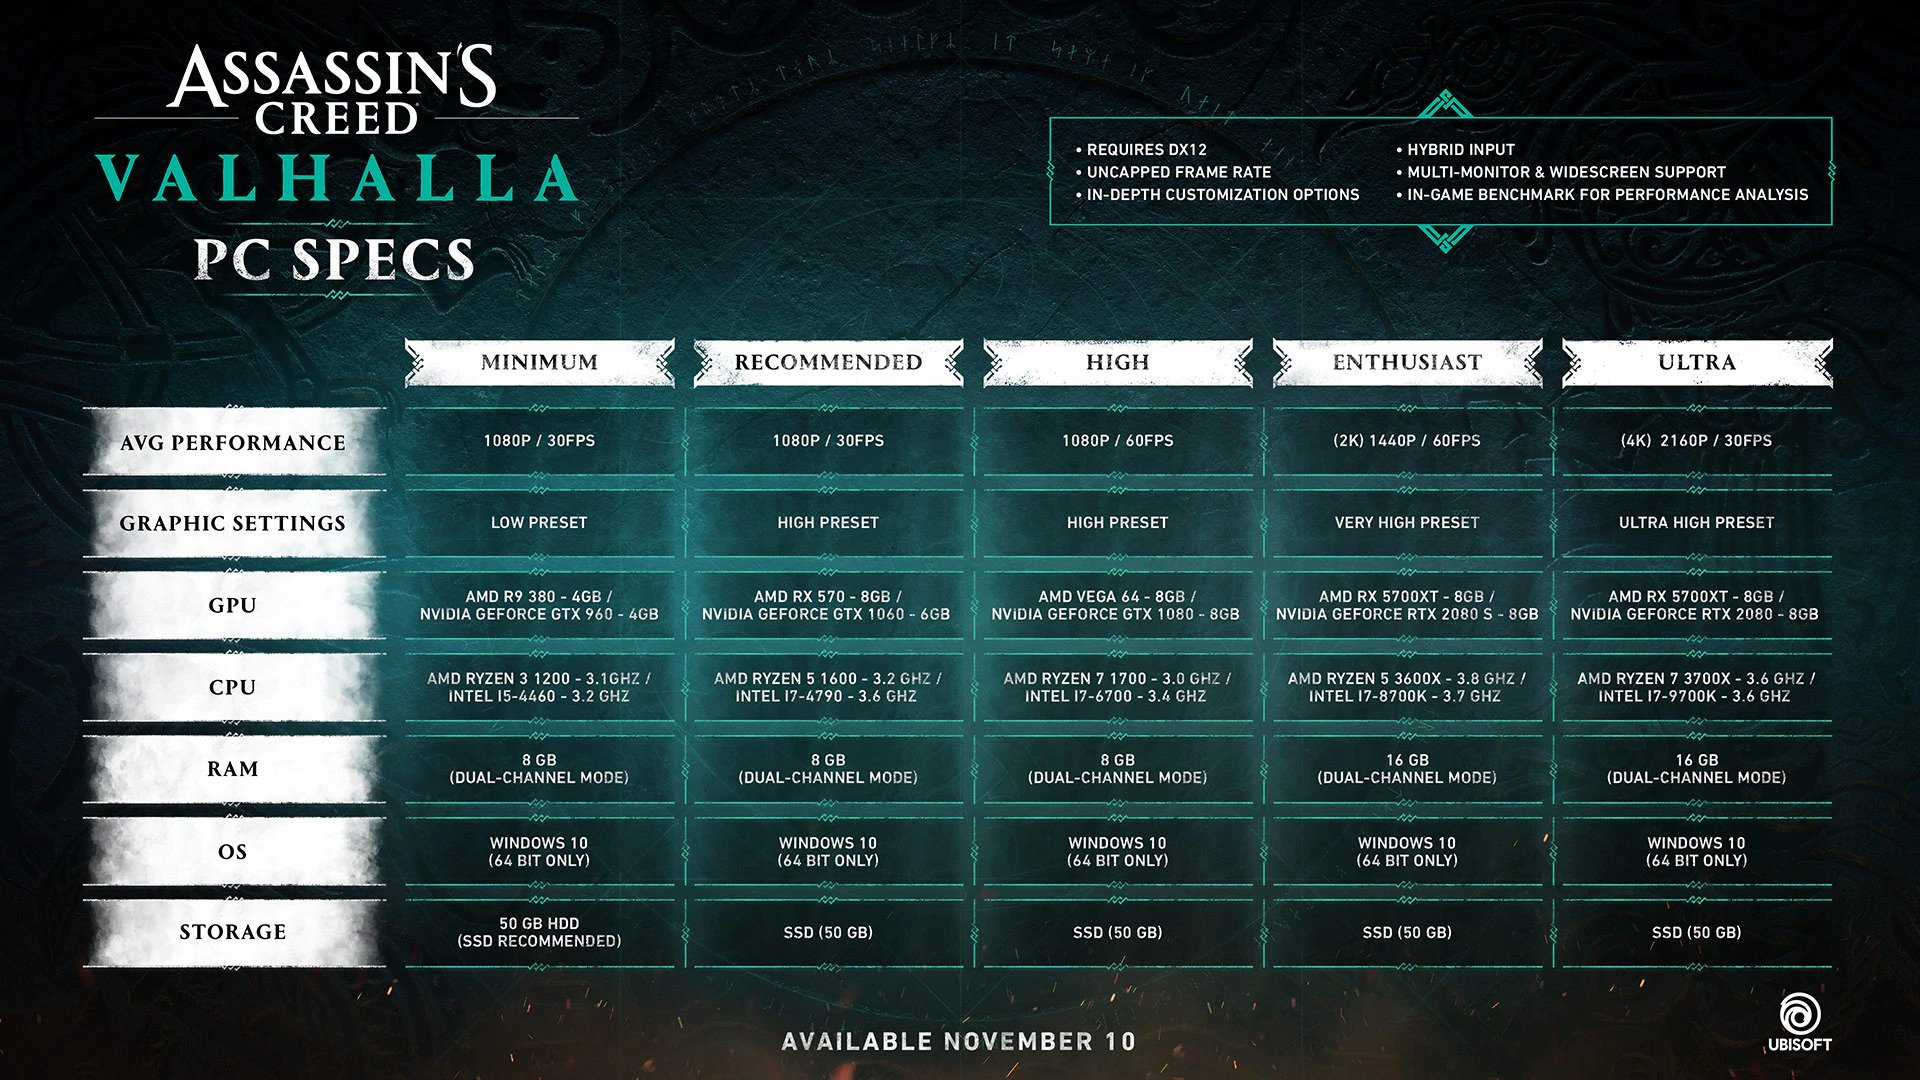 Assassin's Creed Valhalla: PC Specs and Recommended System Requirements